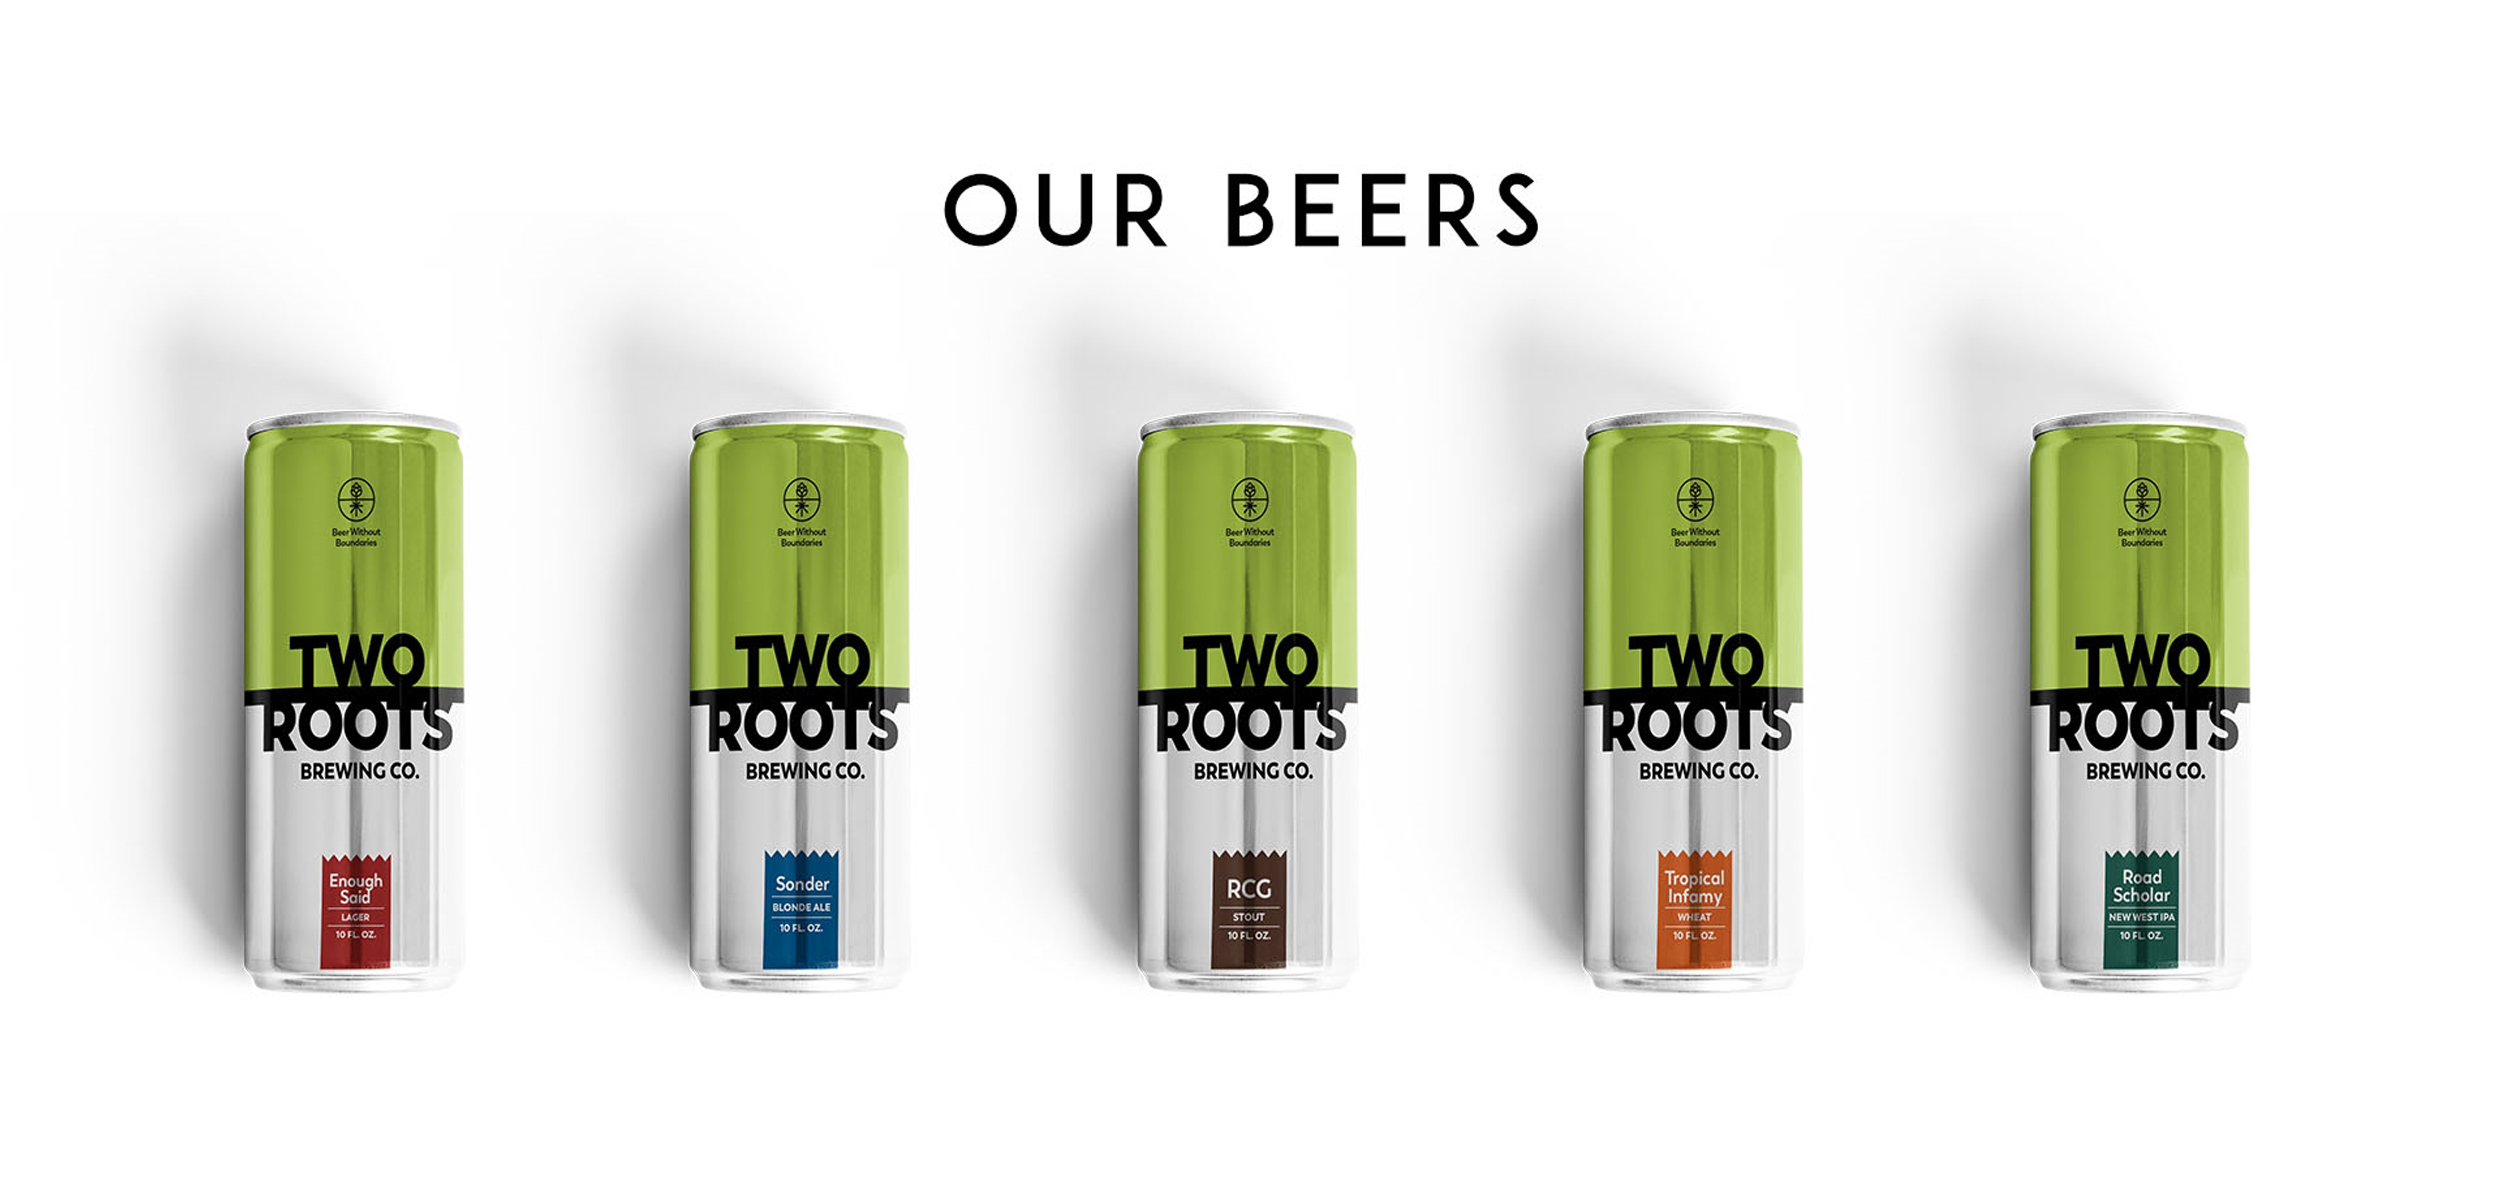 Best Weed Beer Two Roots From Heineken and Coors To Craft and Microbrews, This Is The Best Weed Beer In The World